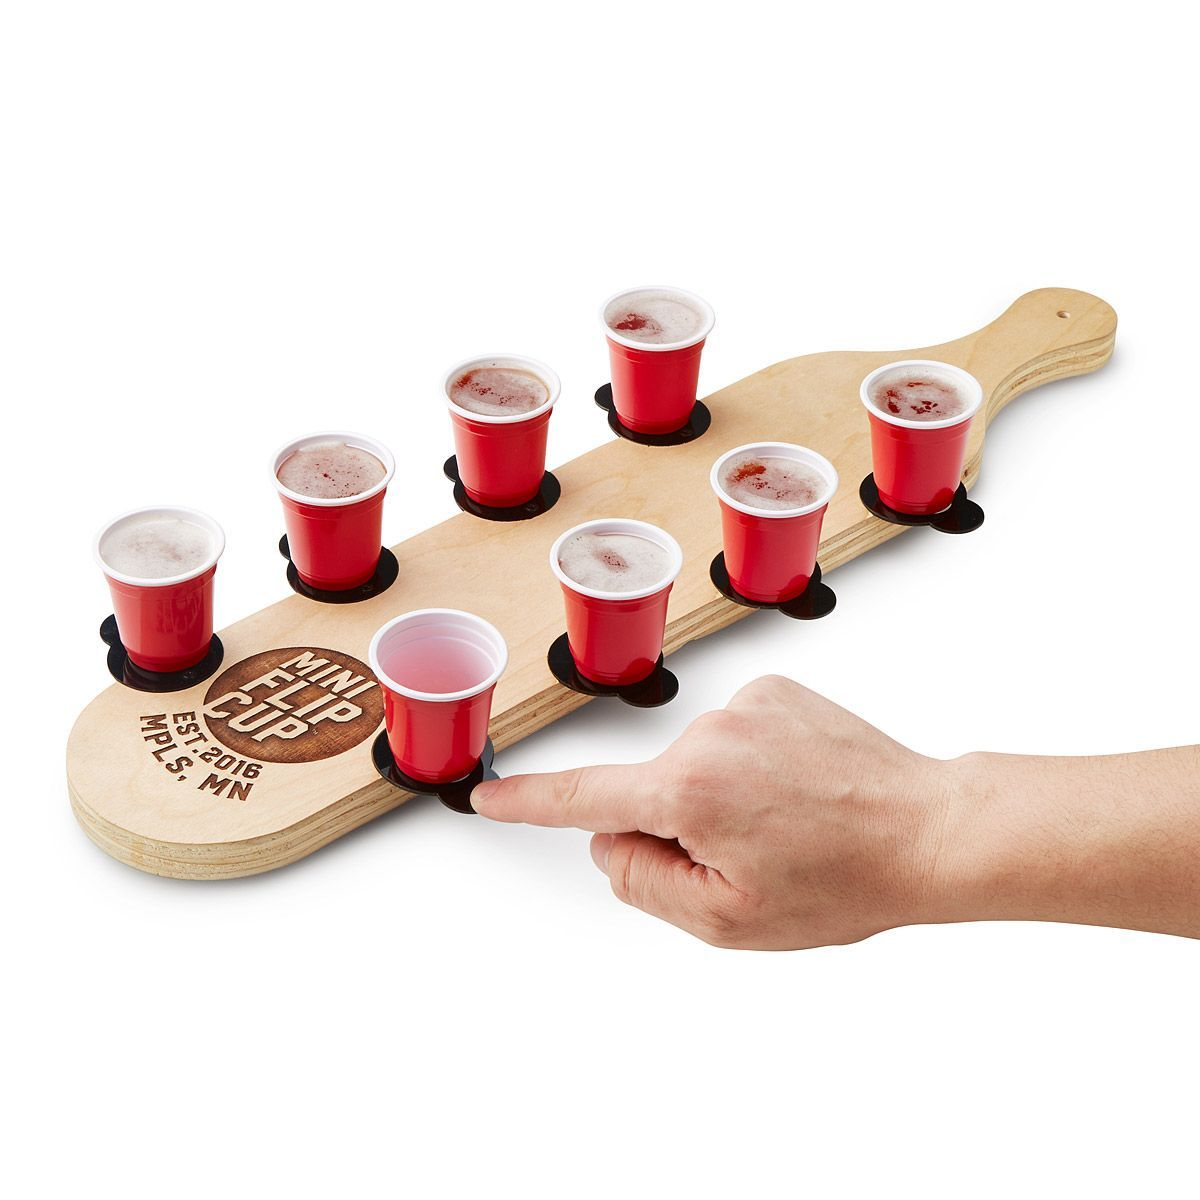 When You Have To Have Flip Cup Anytime Anywhere Una Parte Standard Delaware L A Evoluciod Delawa In 2020 Drinking Games Drinking Games For Parties Mini Beer Pong